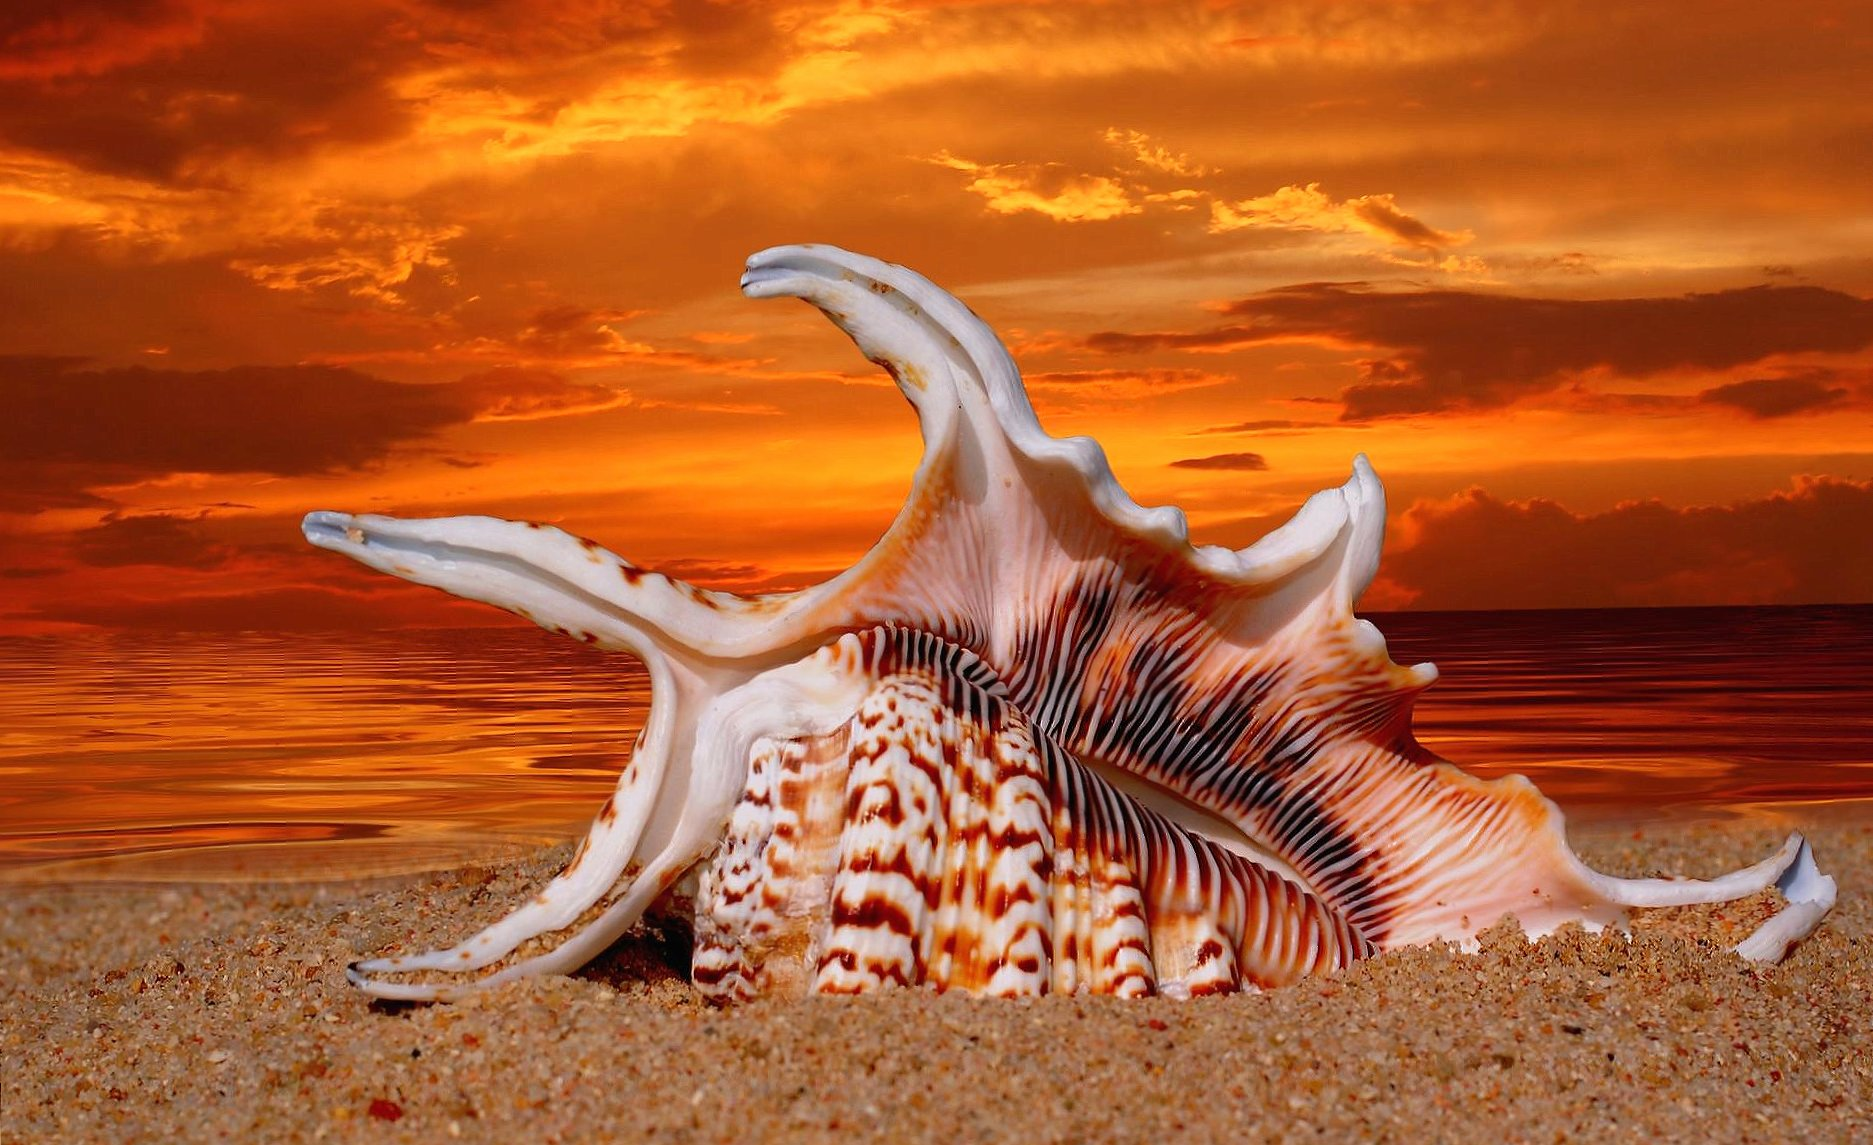 Wonderful shell in sunset beach wallpapers HD quality